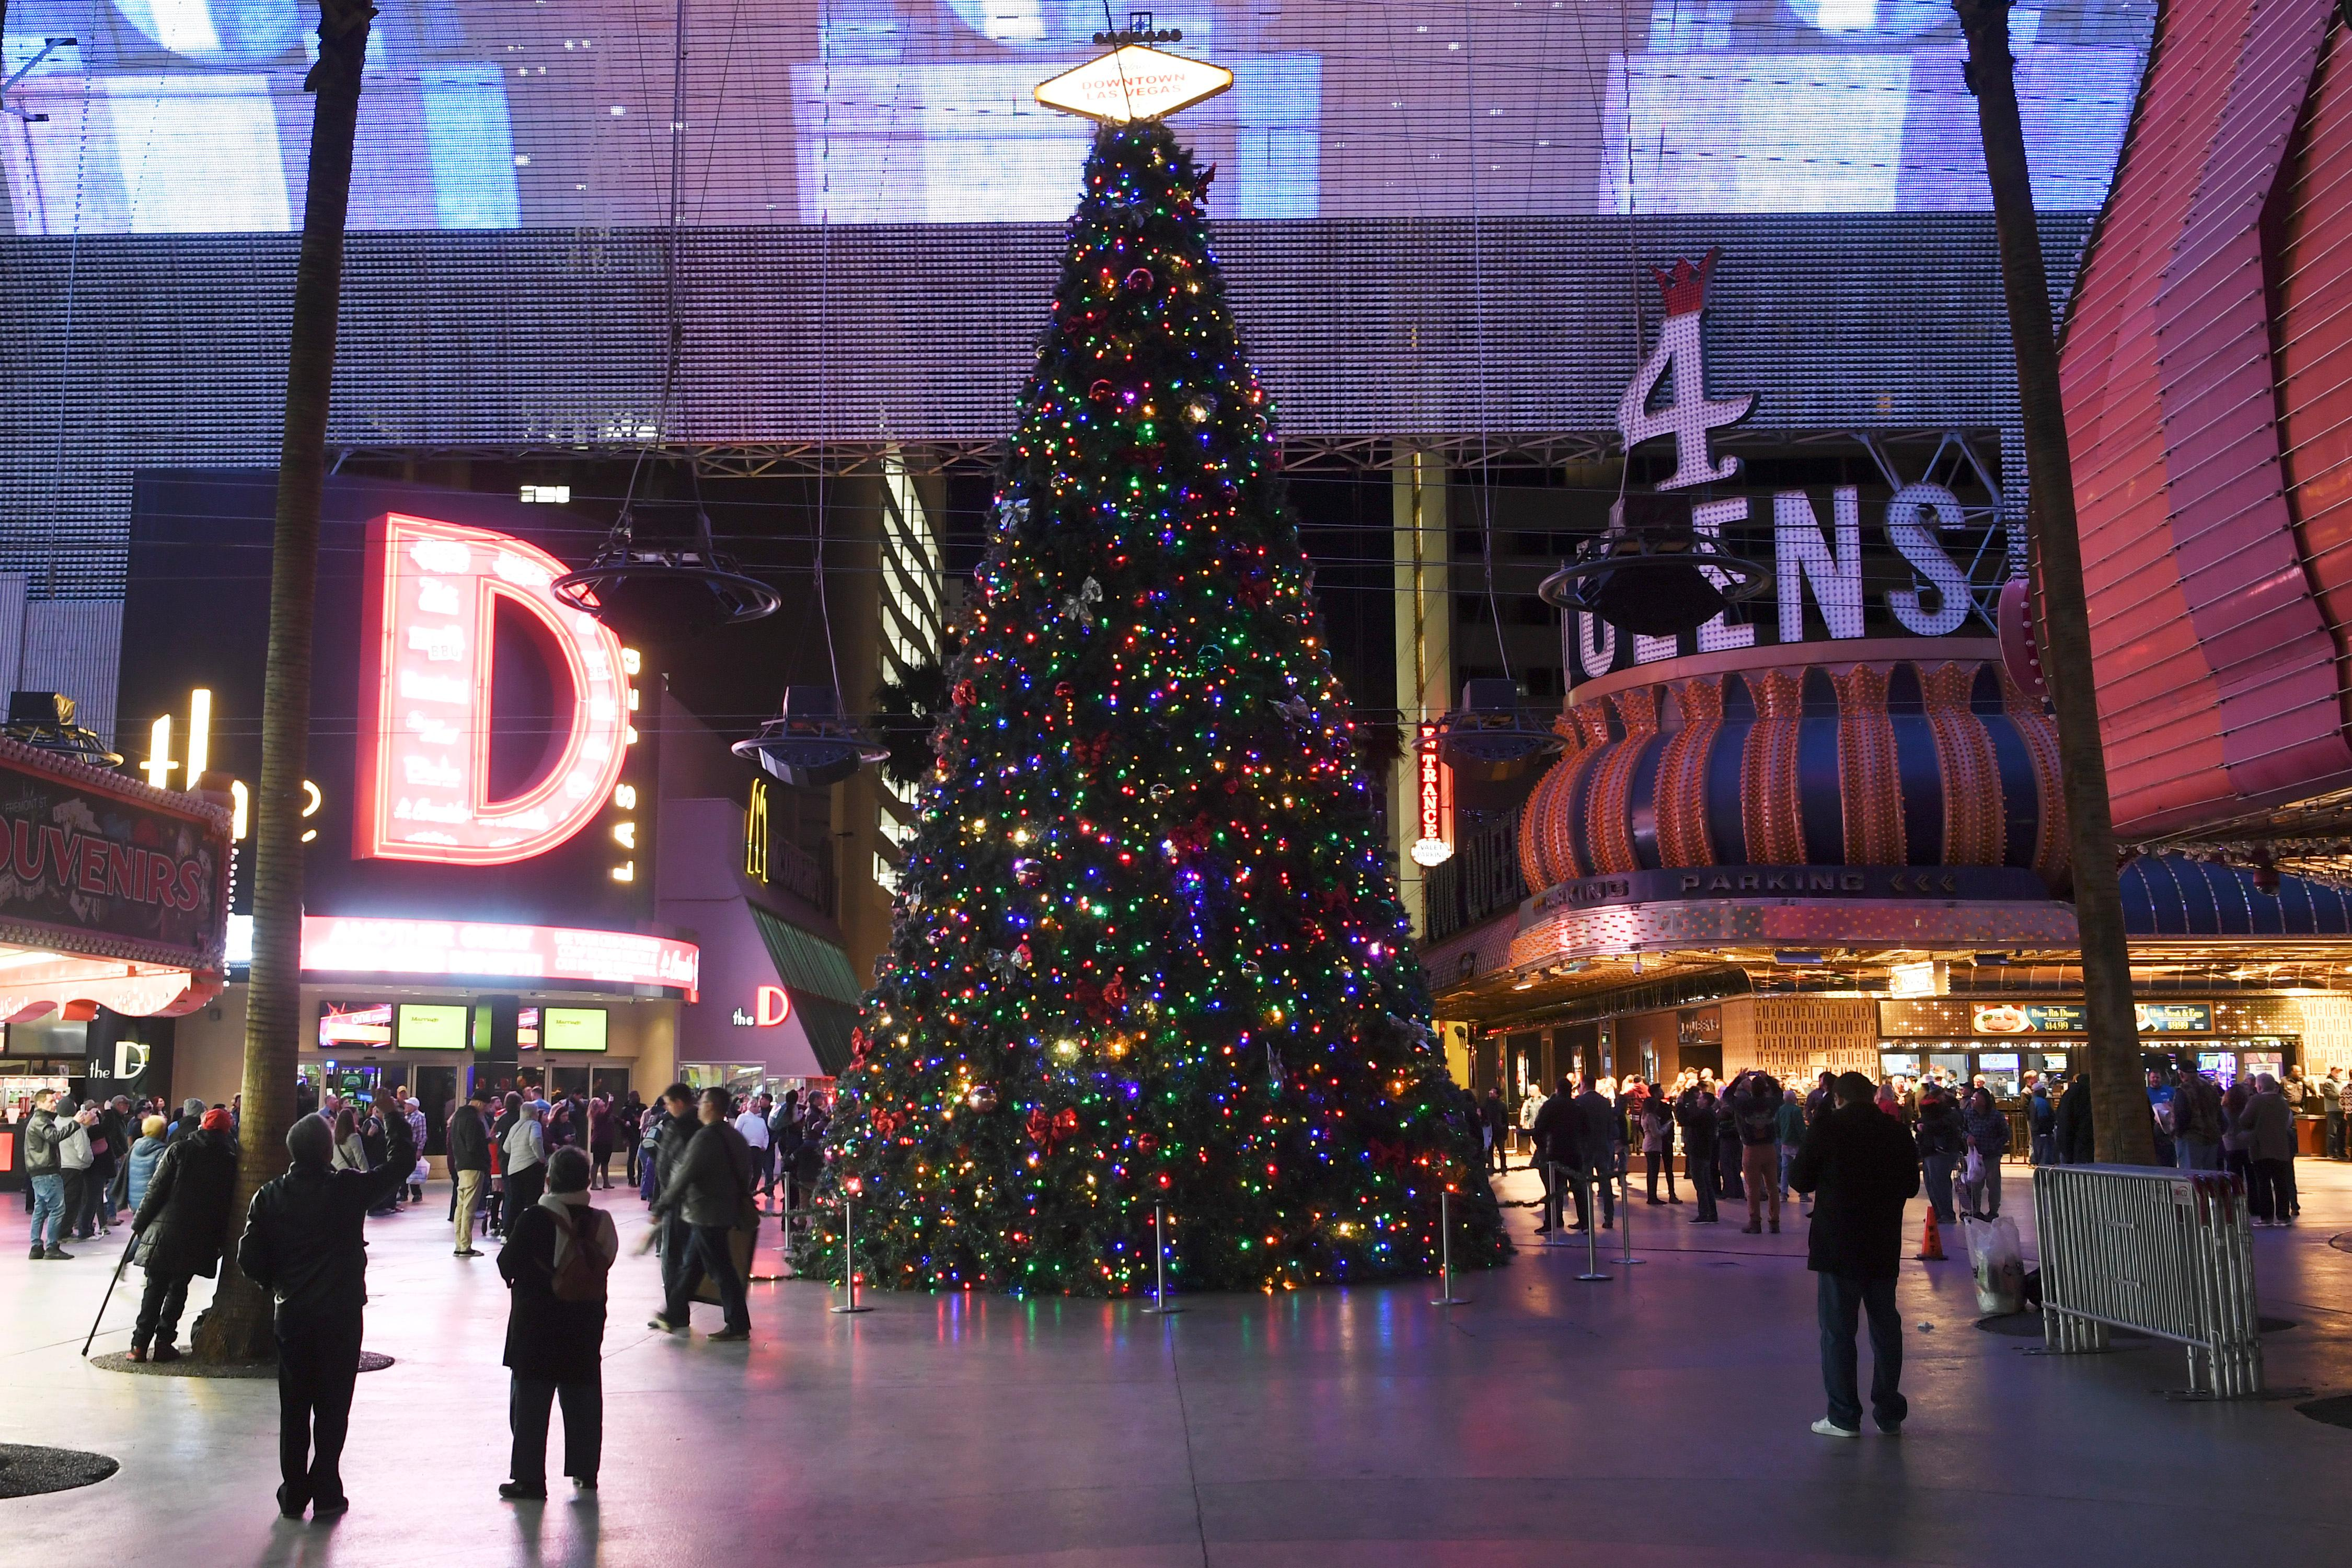 The Fremont Street Experience Christmas tree is seen freshly lit during the annual lighting Tuesday, December 4, 2018. CREDIT: Sam Morris/Las Vegas News Bureau